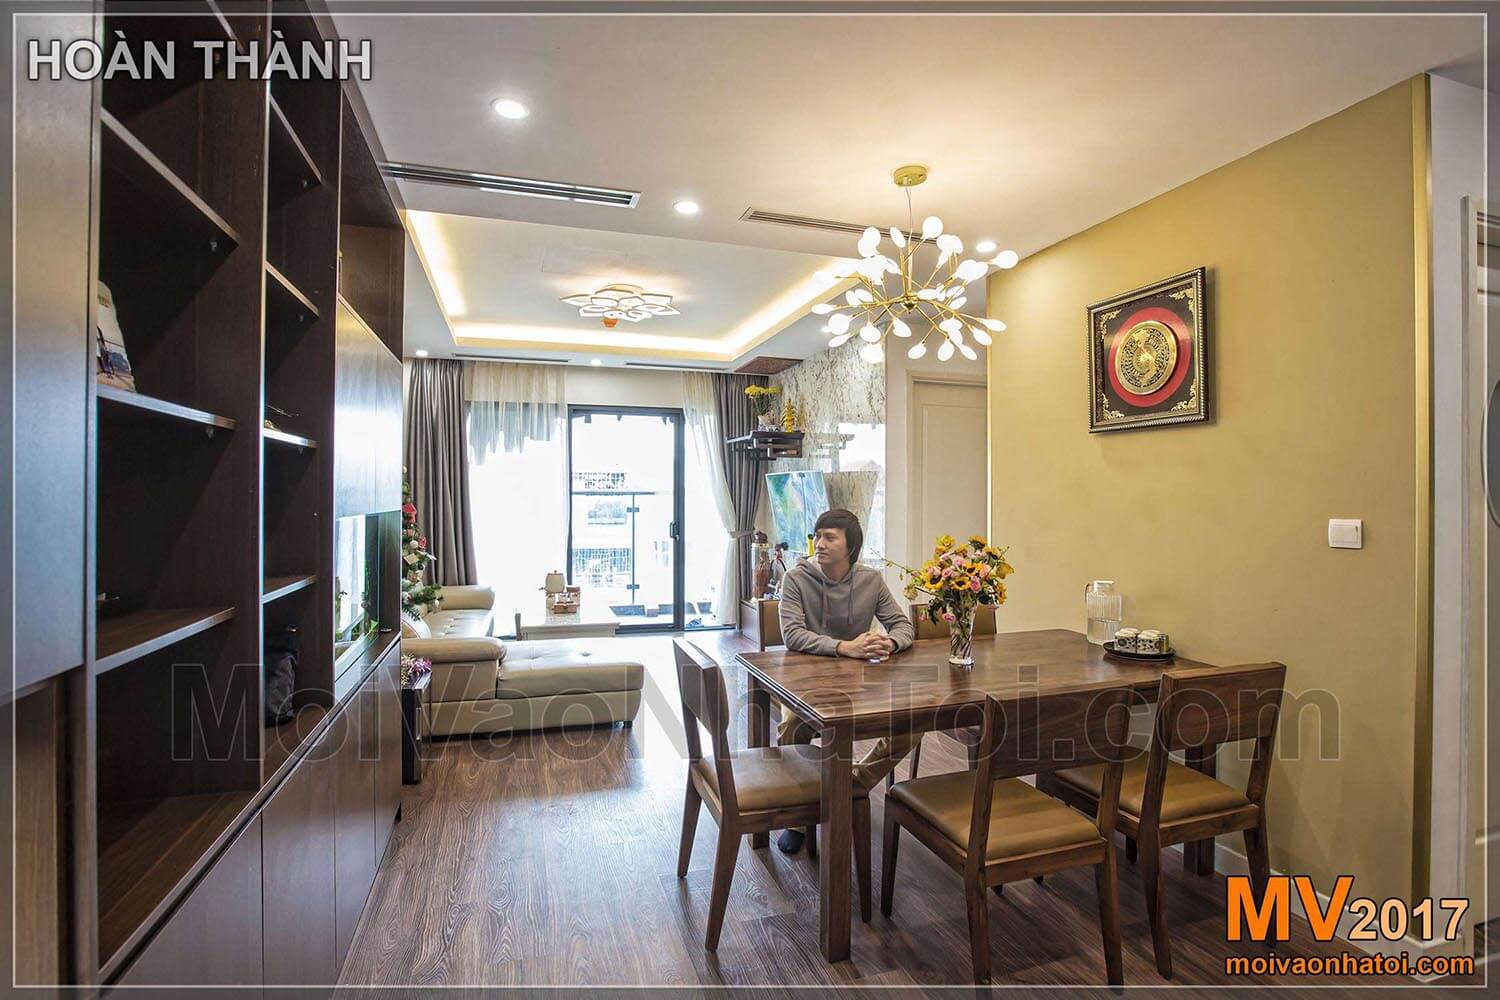 Dining table lights create highlights of IMPERIA GARDEN apartment